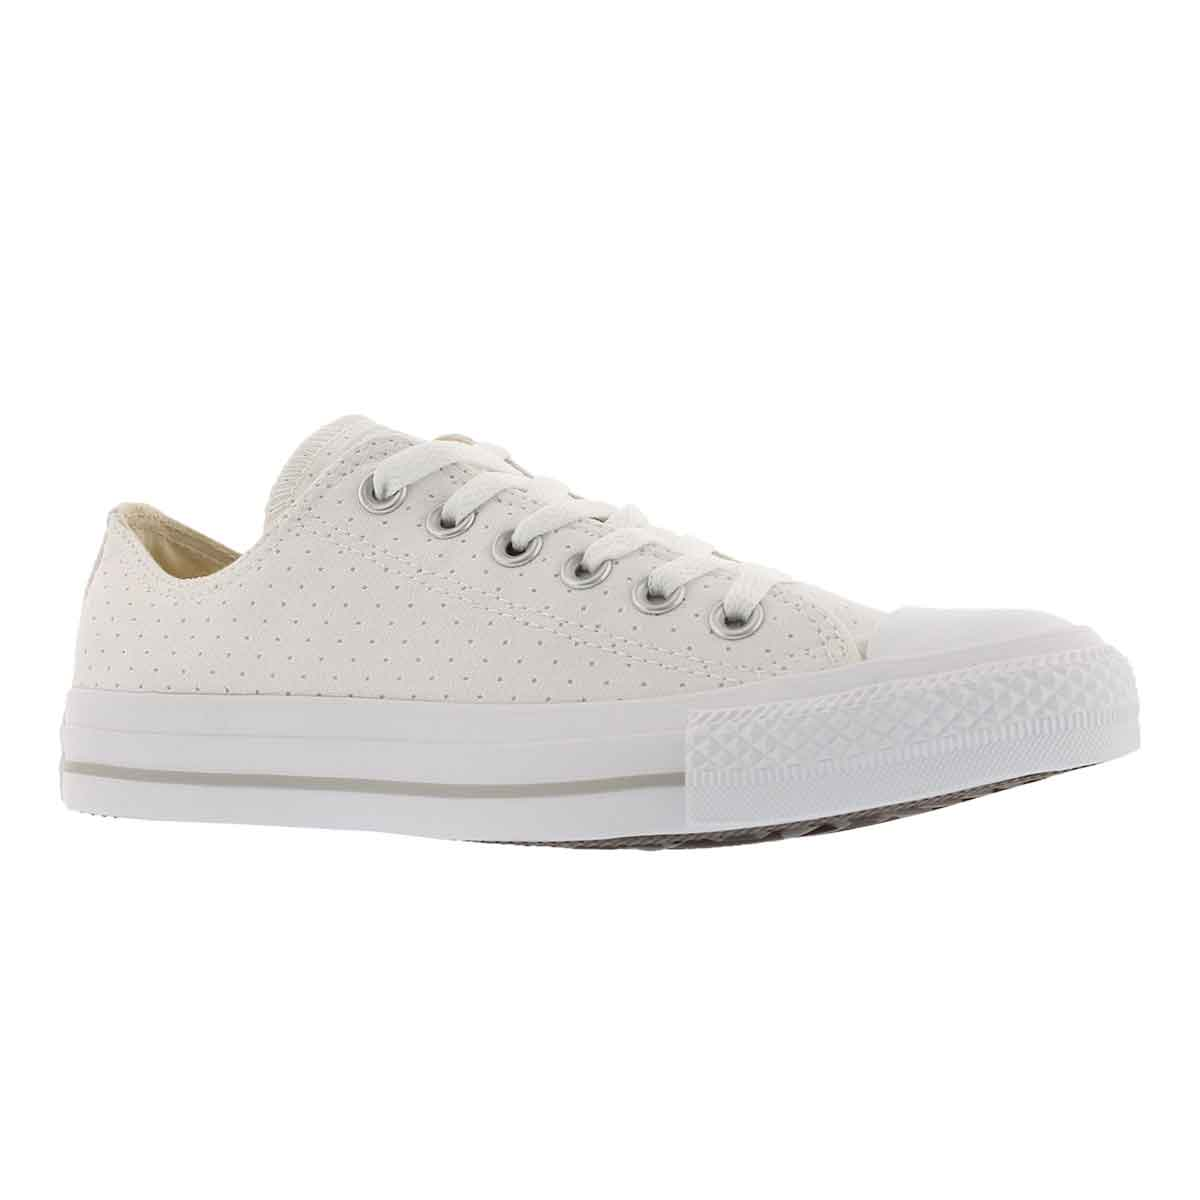 Women's CT ALL STAR PERFORATED white sneakers